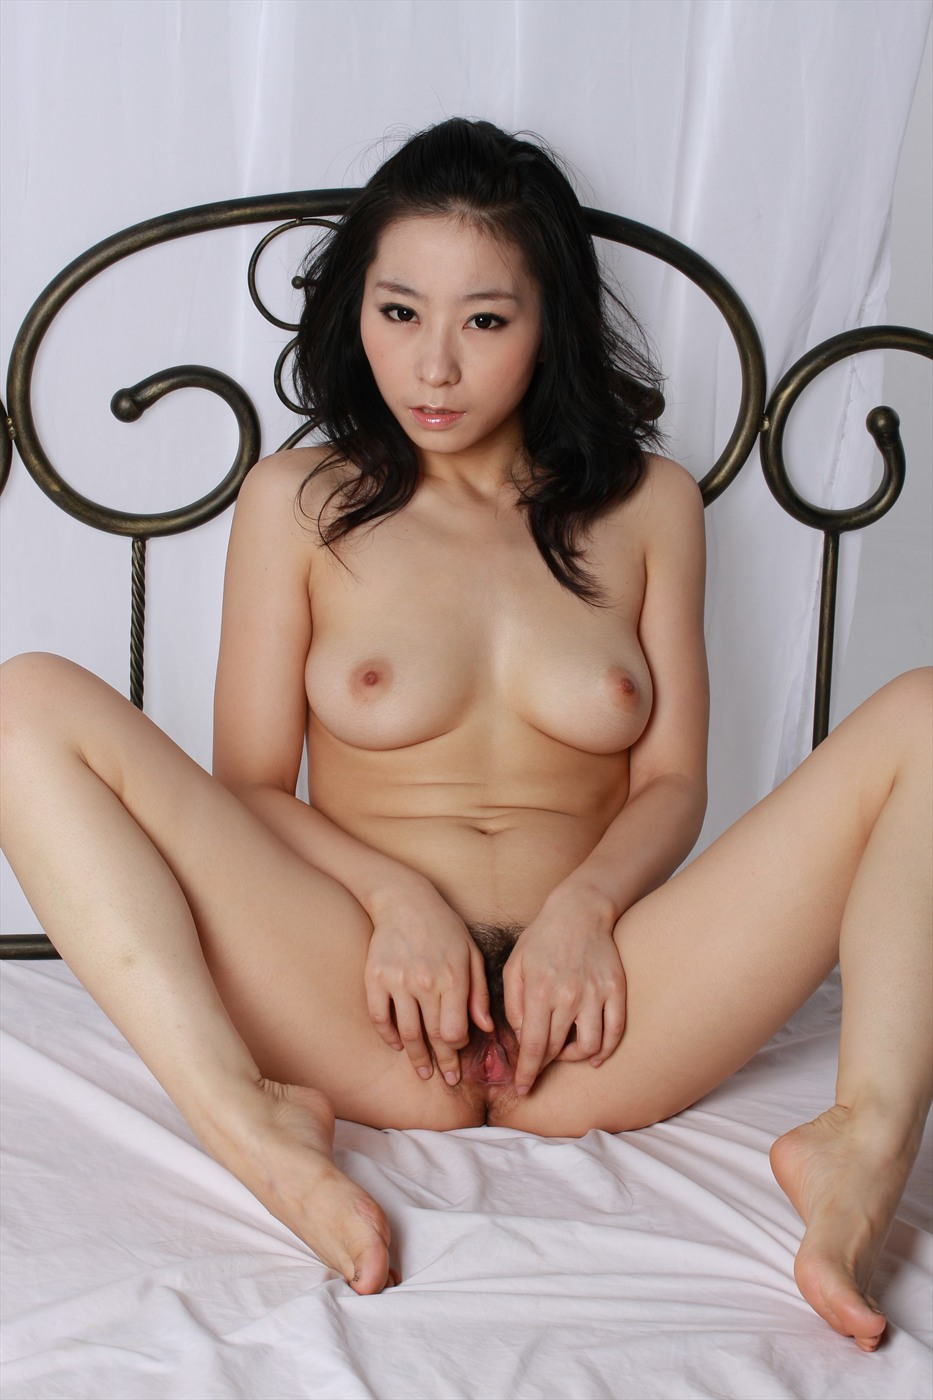 Would like Bobo chan nude pictures theme, will